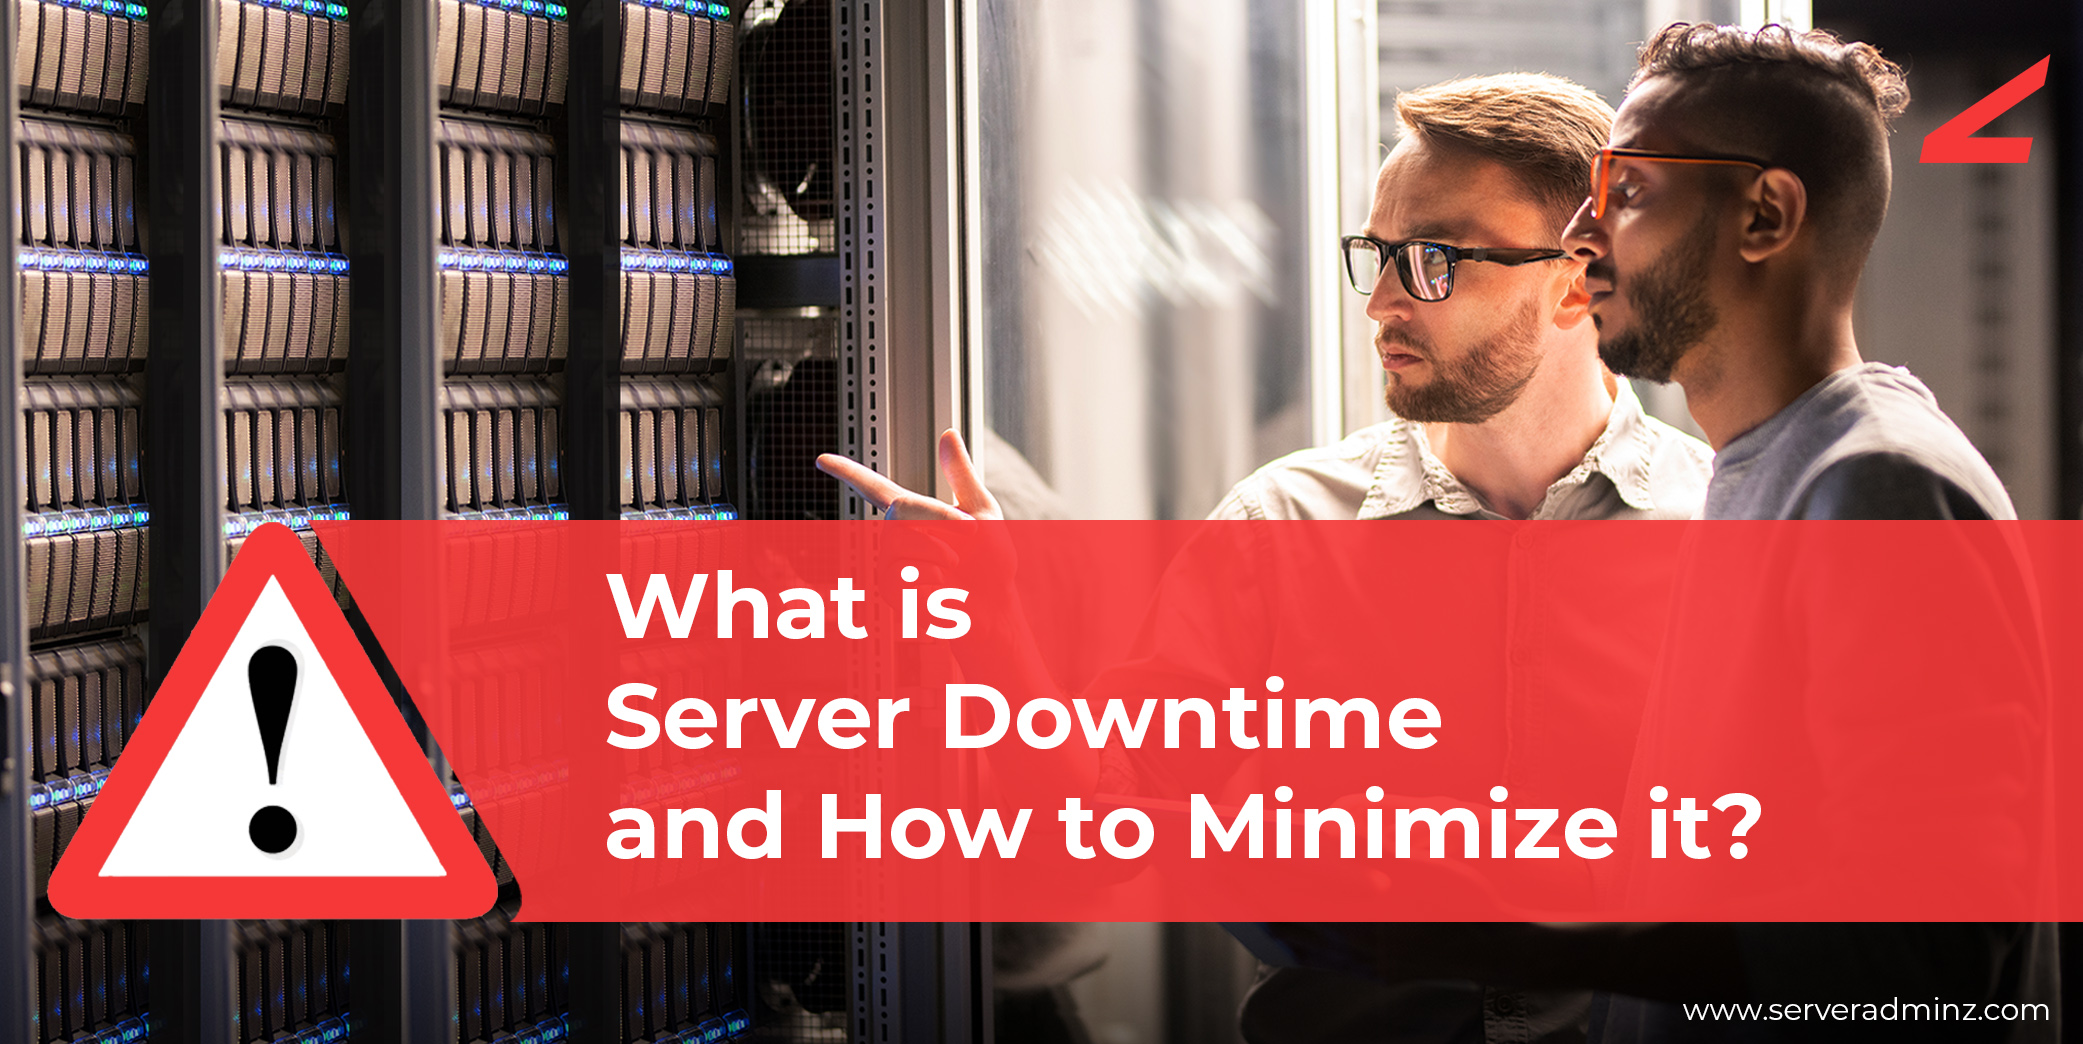 Minimize Server Downtime